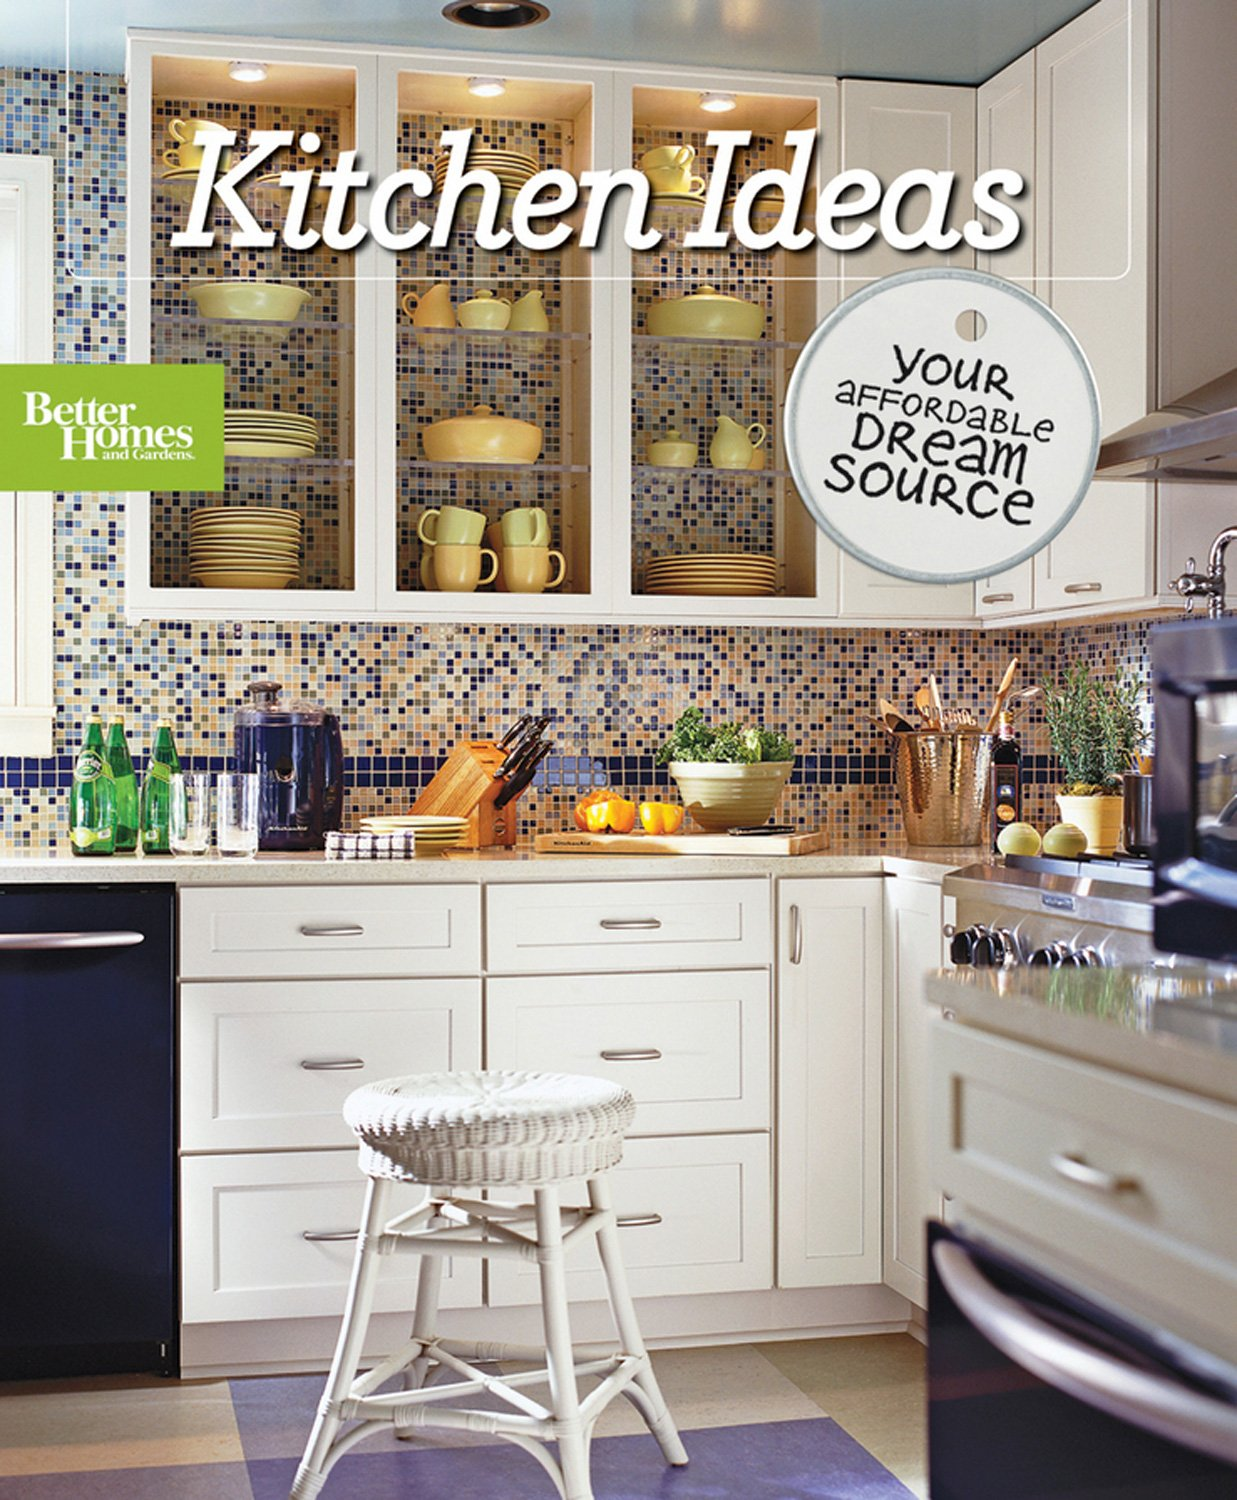 kitchen ideas better homes and gardens better homes and gardens home better homes and gardens 9780470508947 amazoncom books - Better Homes And Gardens Kitchen Ideas